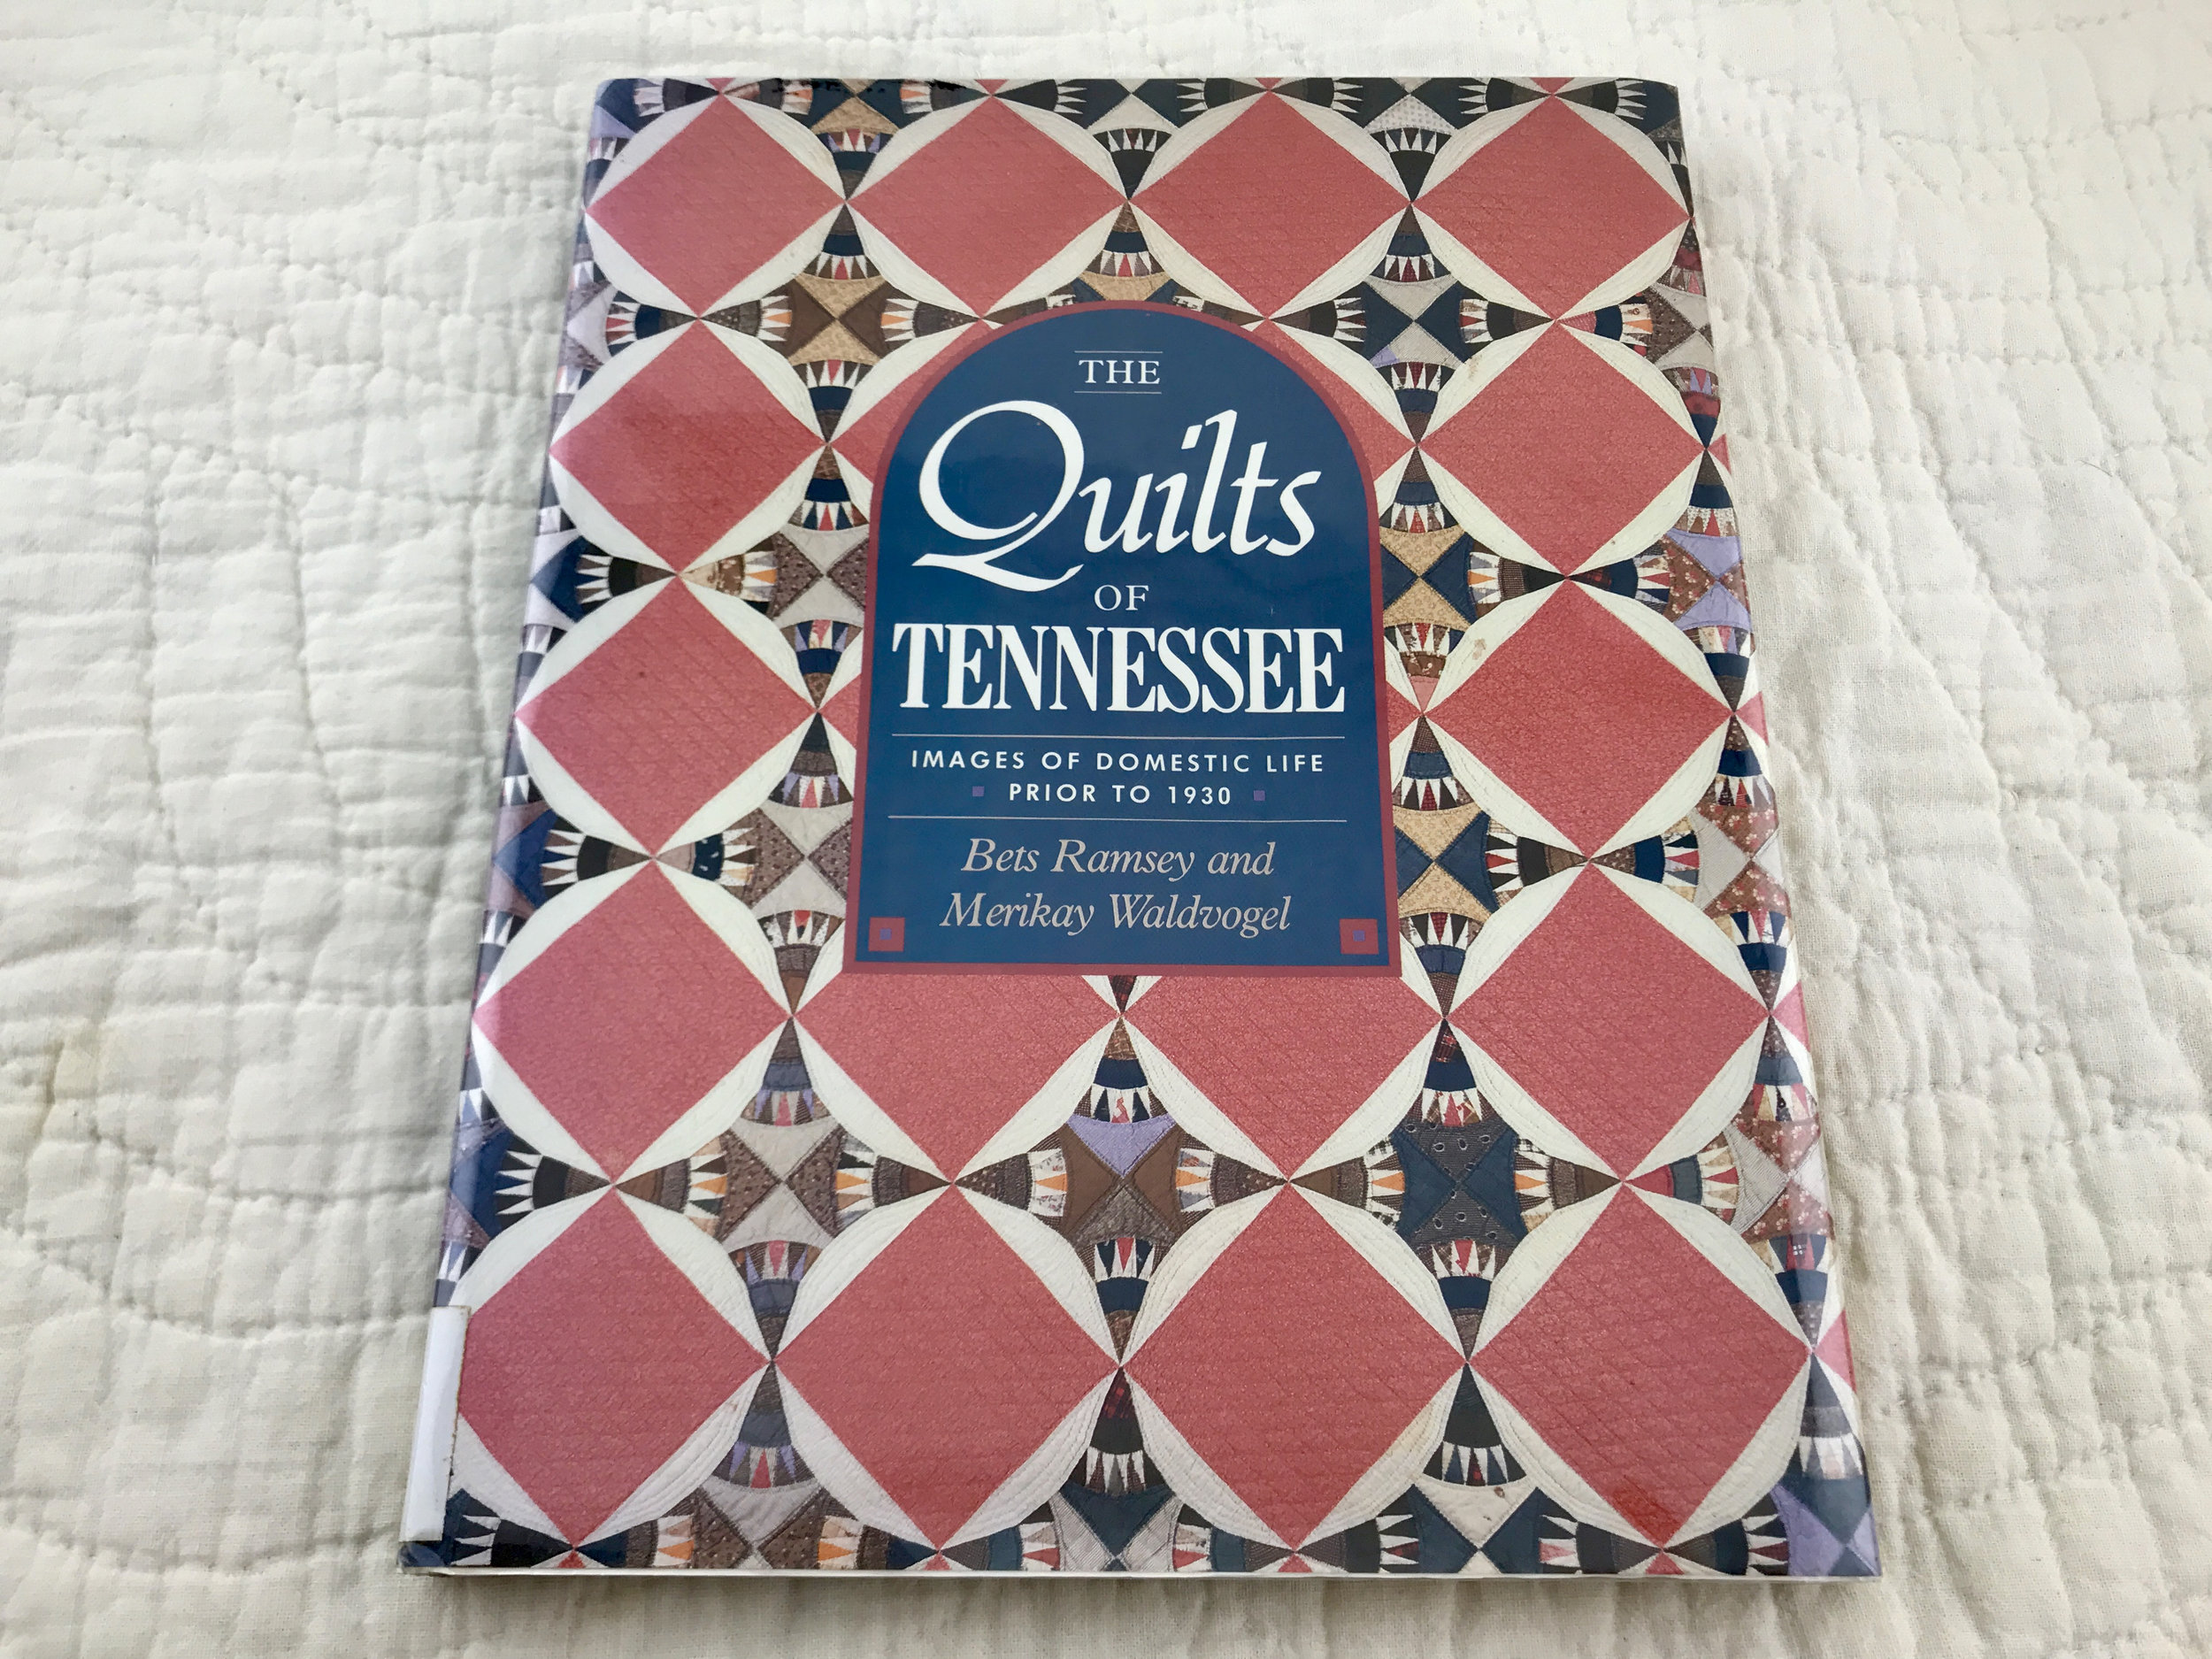 Our 2019 QuiltCon Charity Quilt Challenge entry will be inspired by an antique quilt in this book